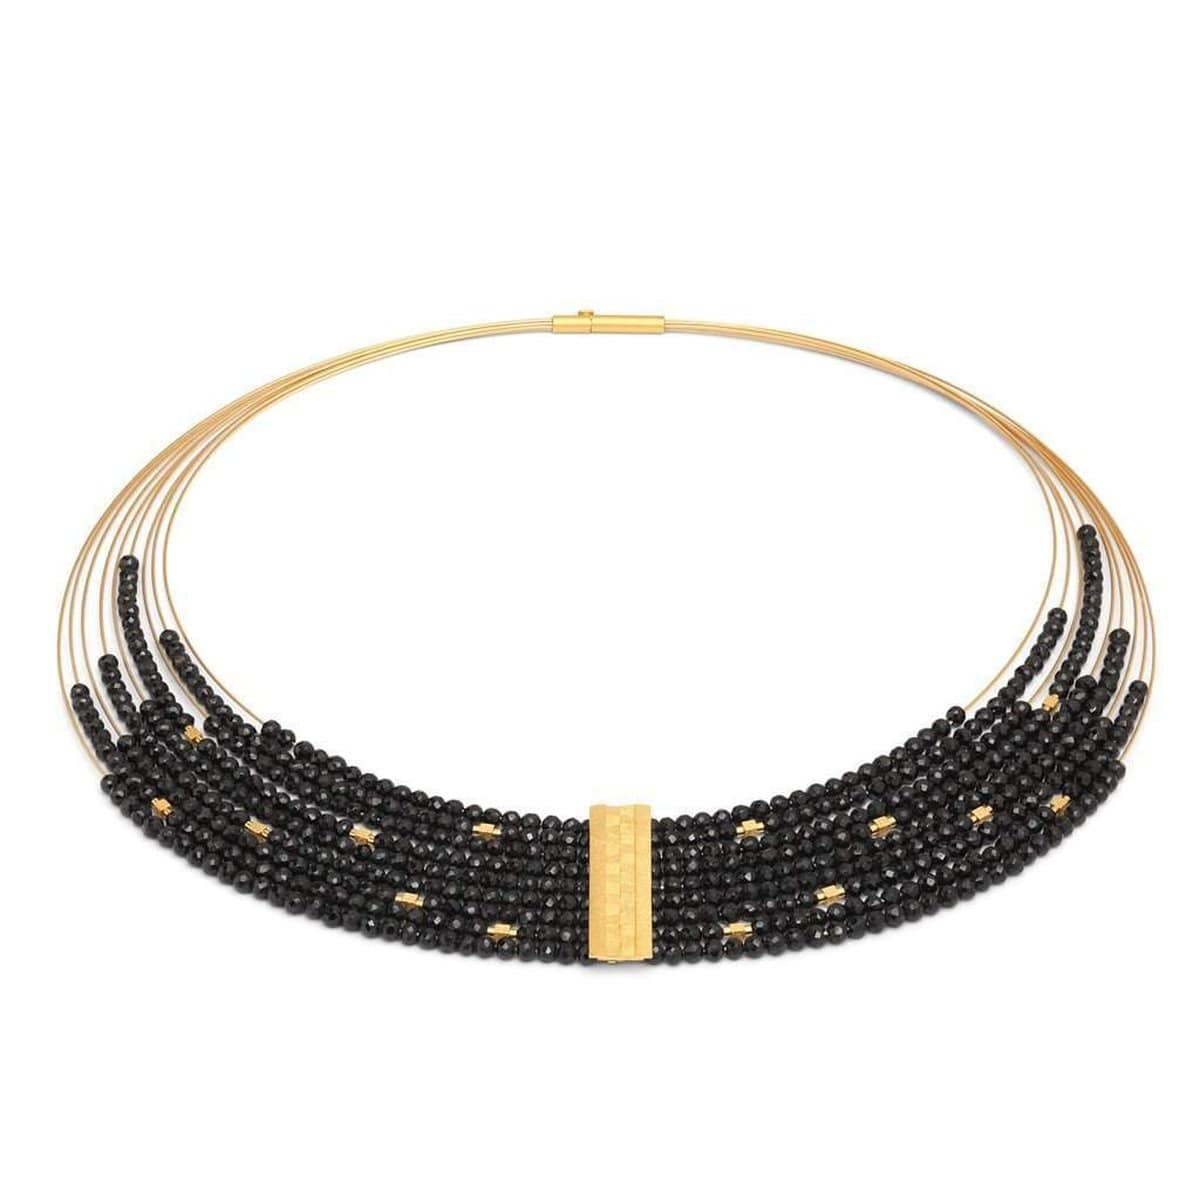 Maxifea Black Spinel Necklace - 85096496-Bernd Wolf-Renee Taylor Gallery